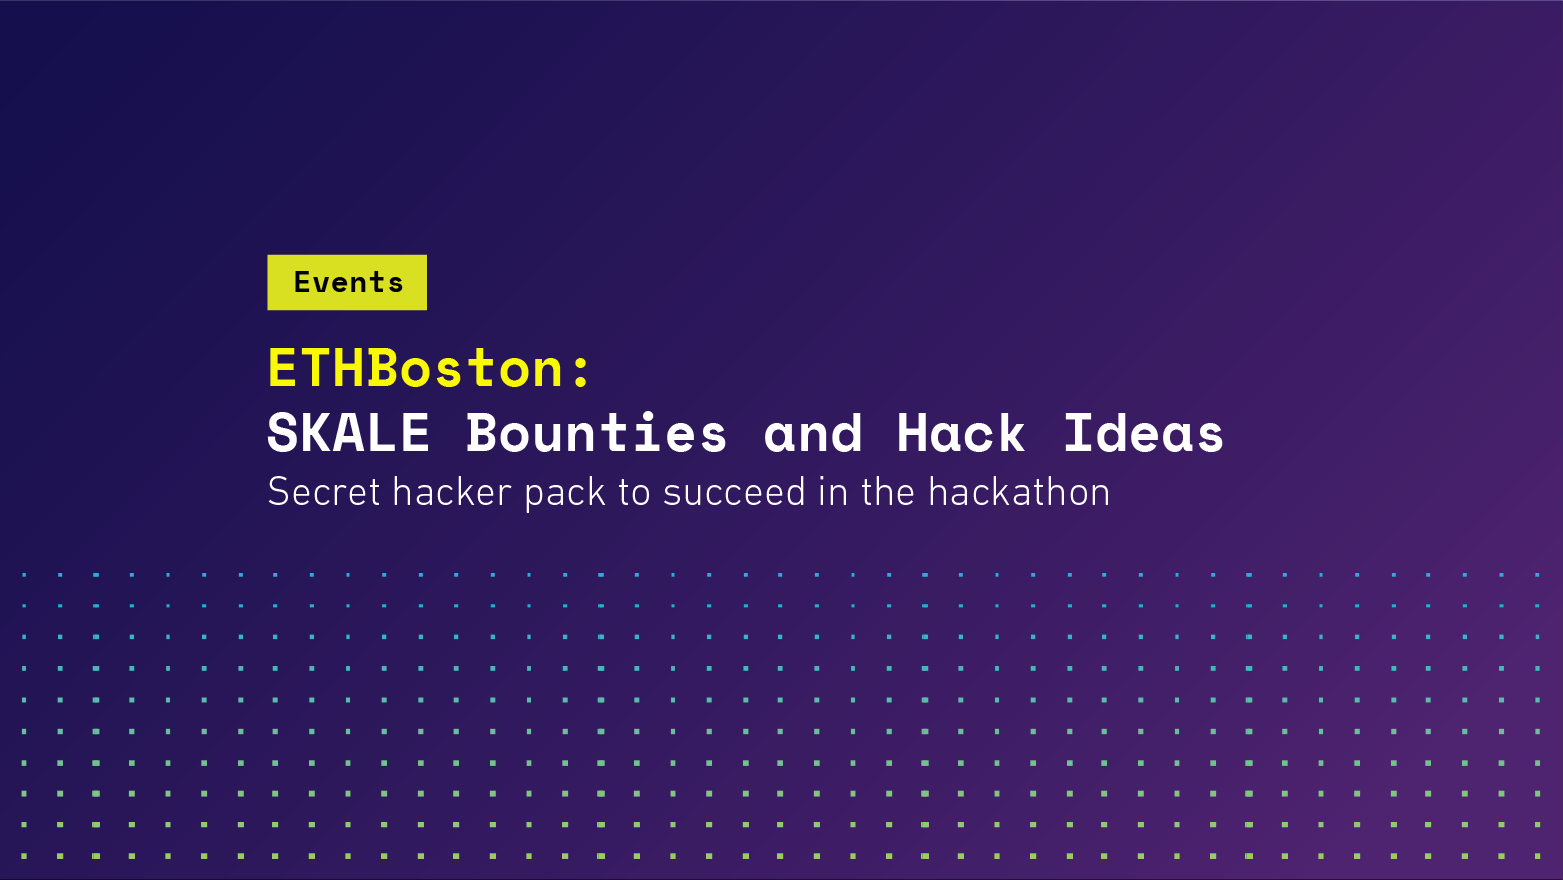 ETHBoston: SKALE Bounties and Hack Ideas